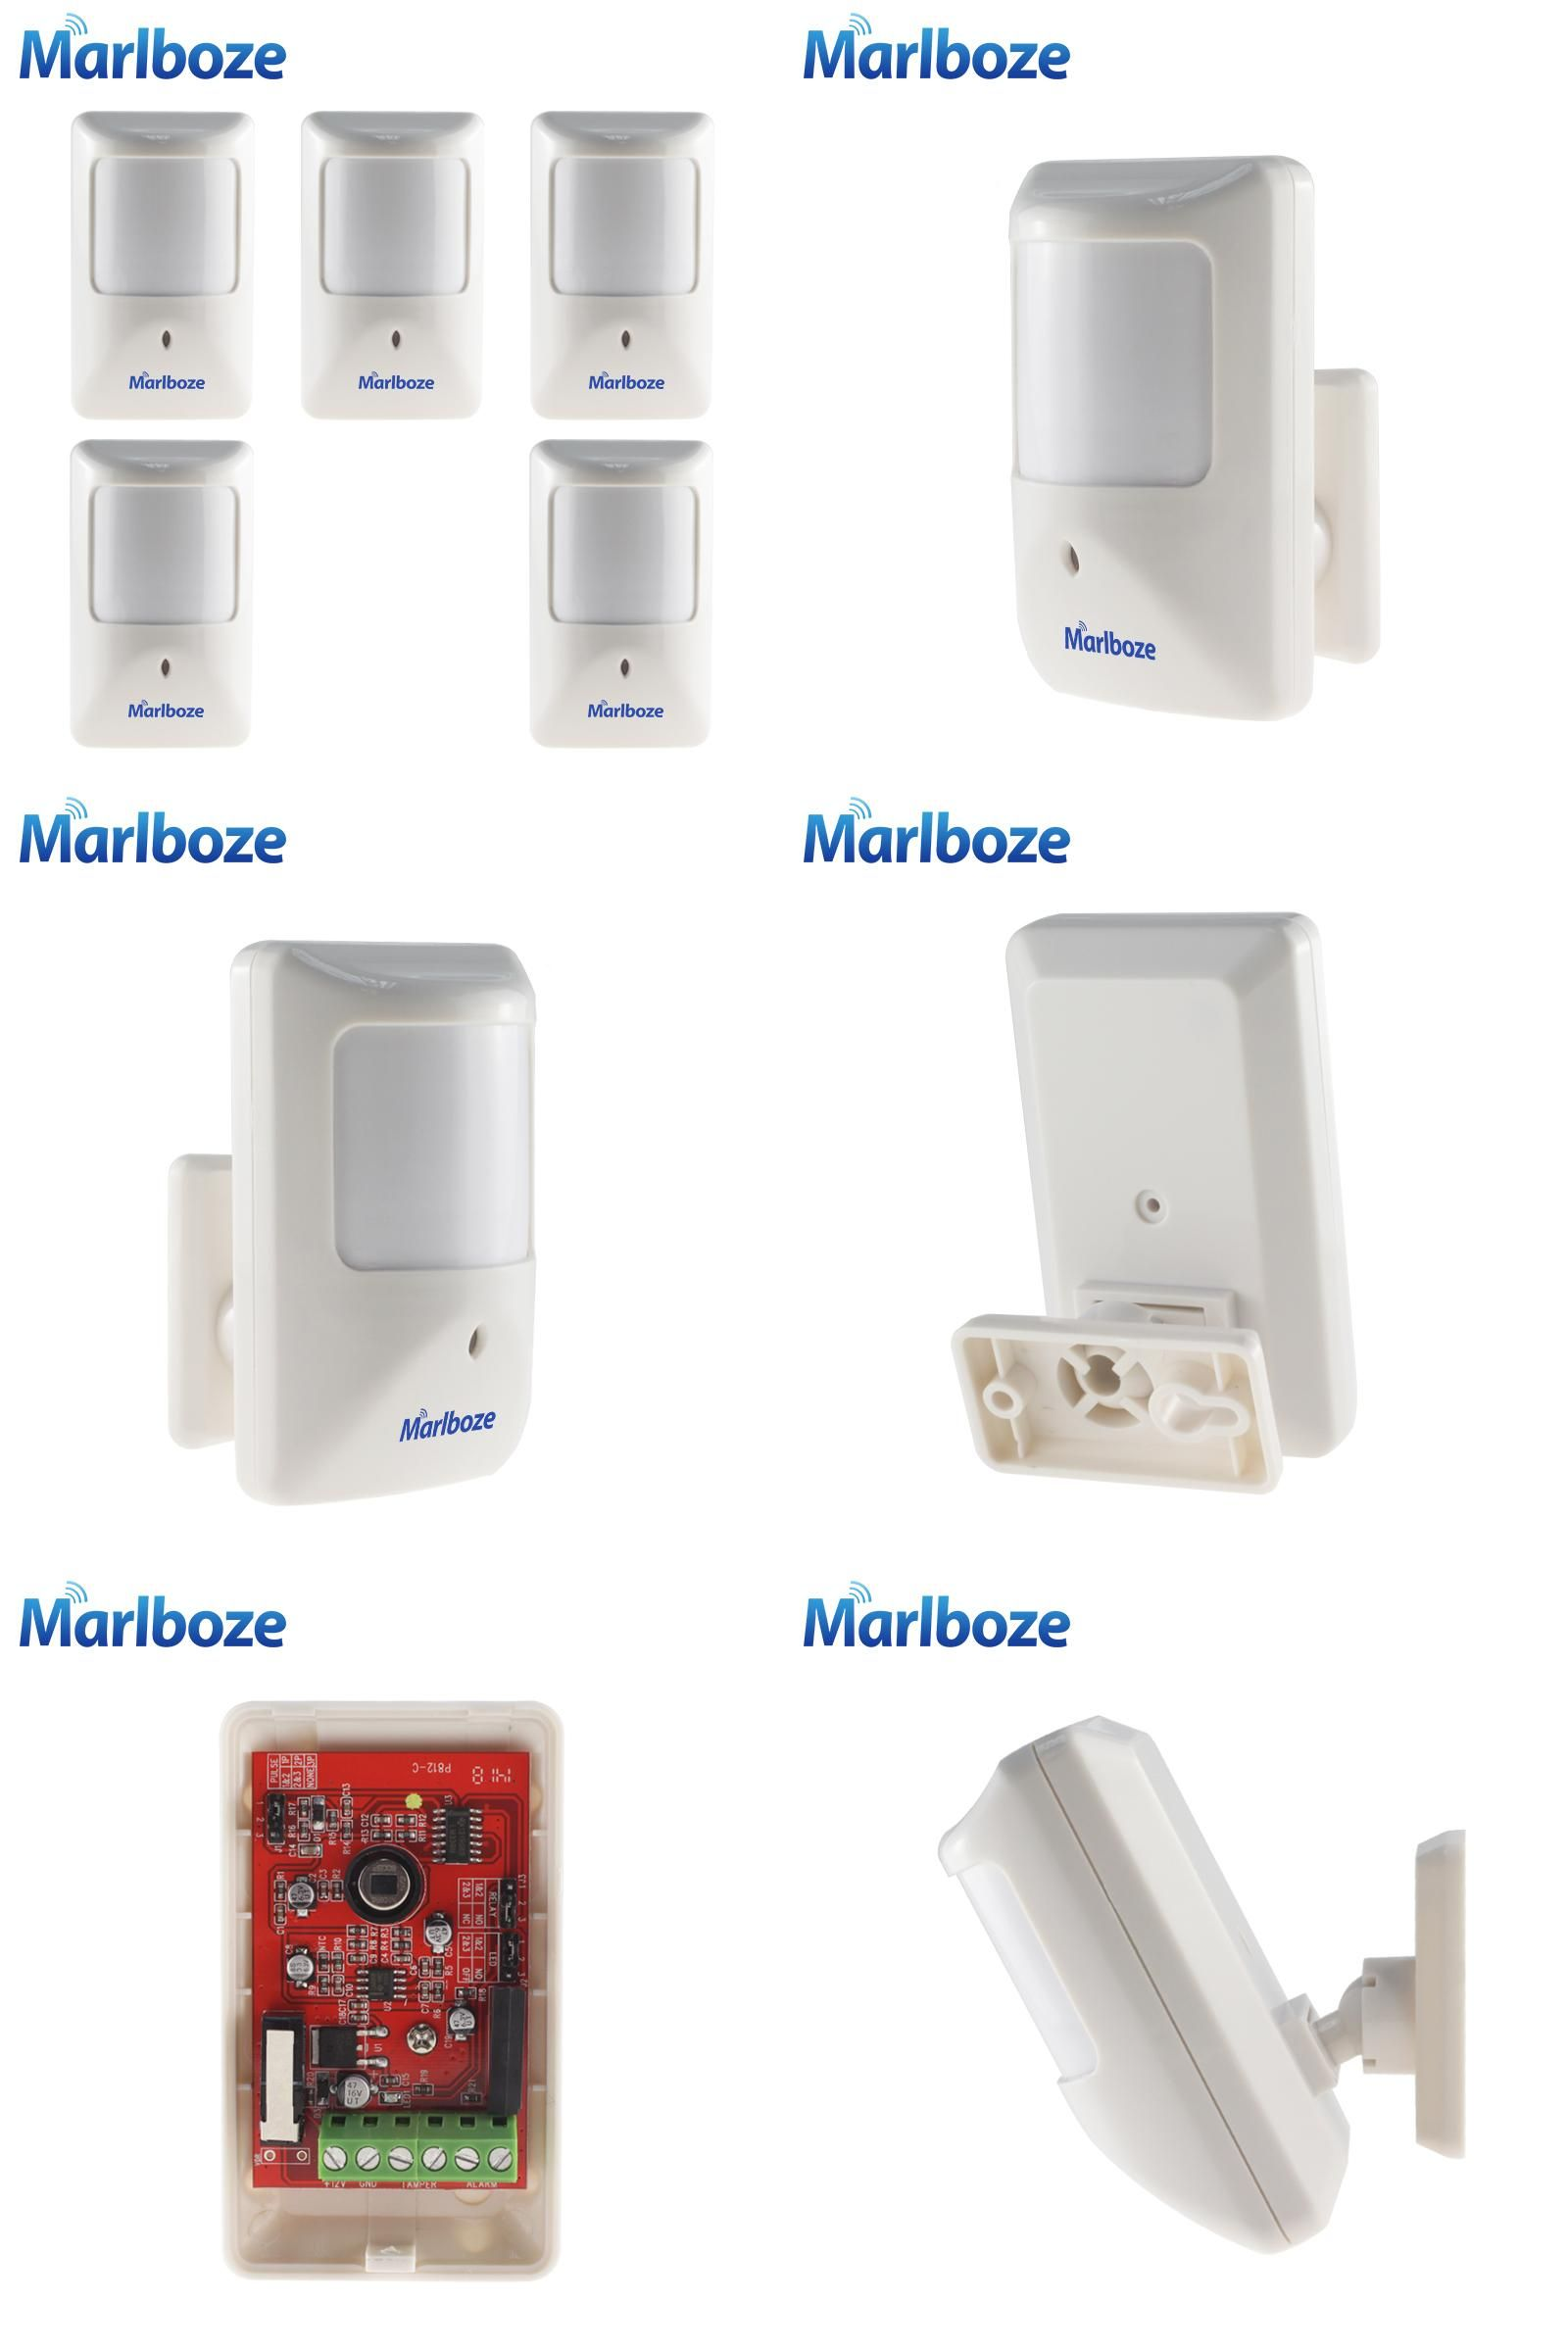 Visit to Buy] Marlboze 5pcs/lot P812 Wired Infrared Motion Detector ...